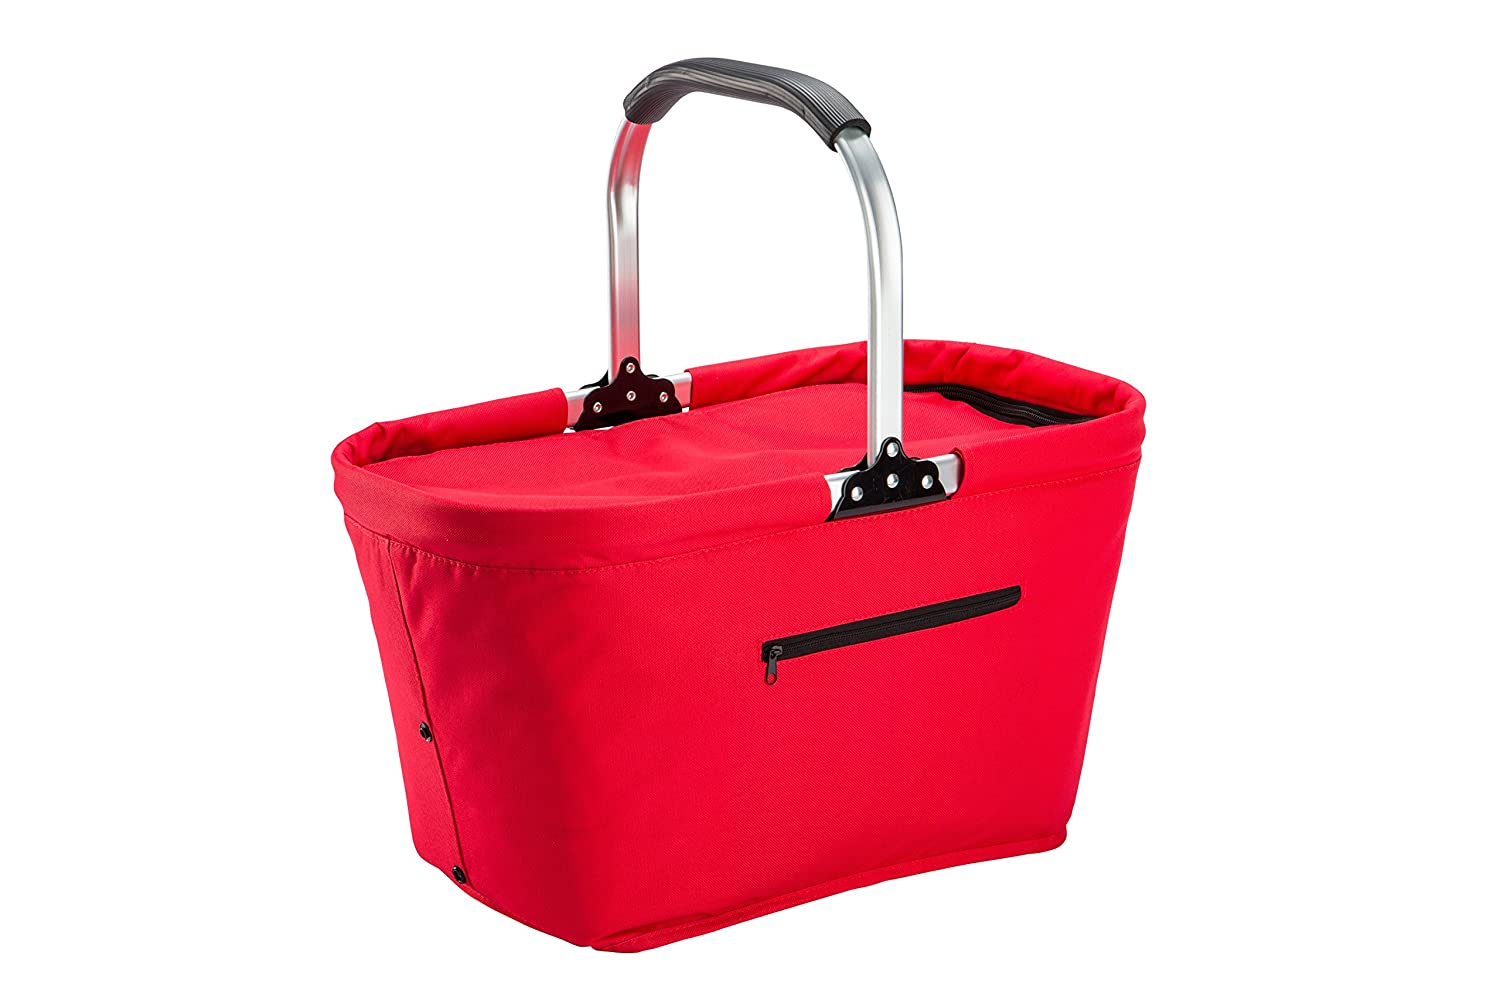 Lightweight Collapsible Foldable Insulated Thermal Picnic Bag Basket Cooler w Aluminum Handle, Large Family Size Red